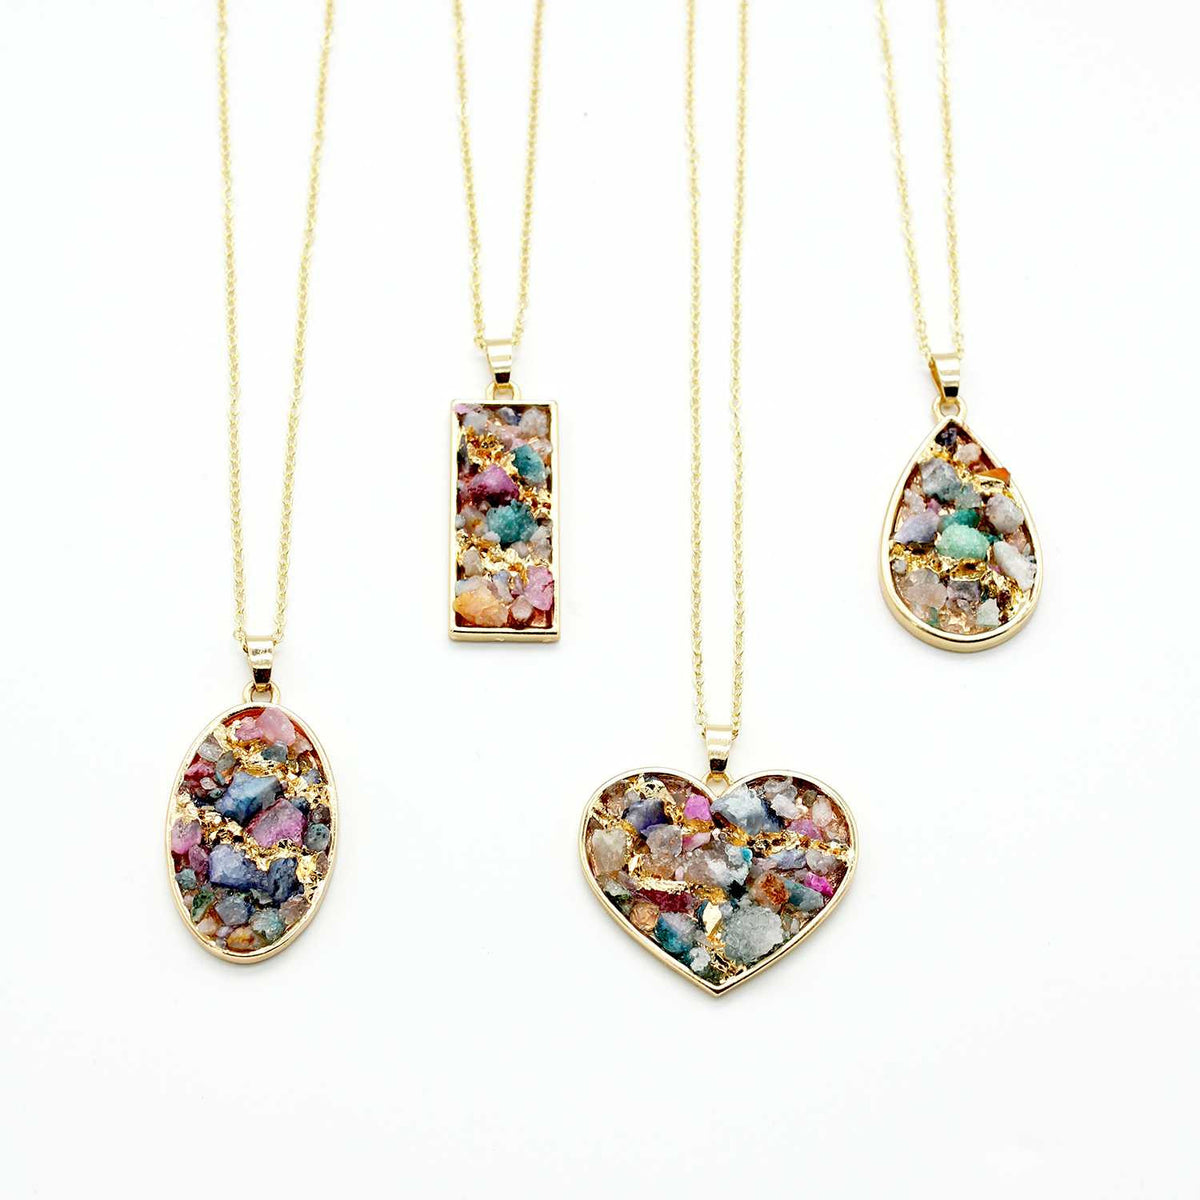 Natural Crystal Druzy Pendant Necklace - worthtryit.com